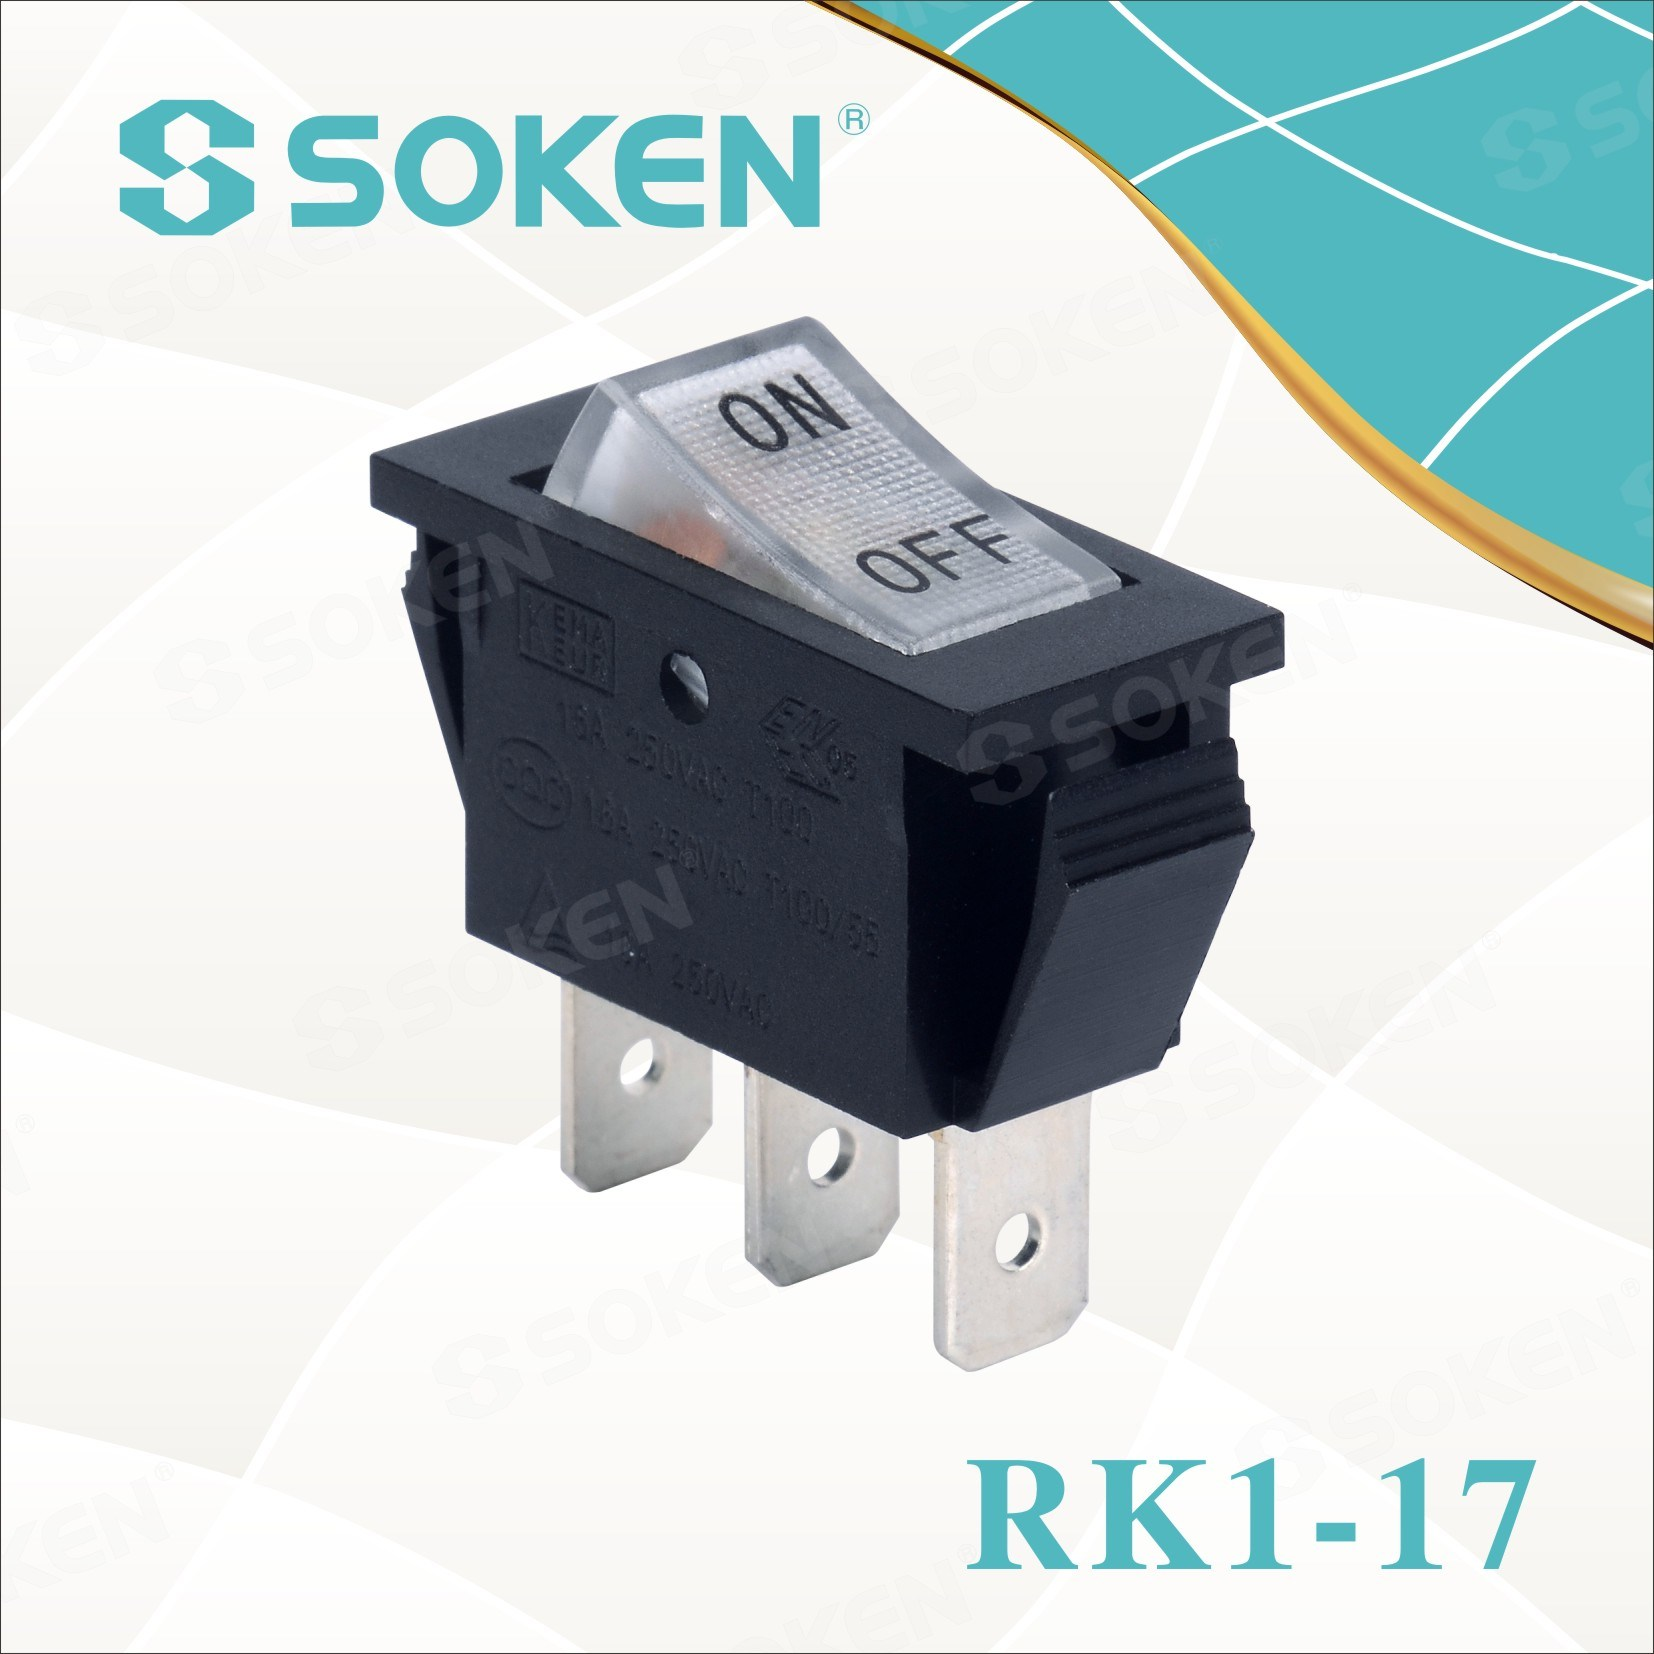 Soken Rk1-17 1X1n on off Illuminated Rocker Switch